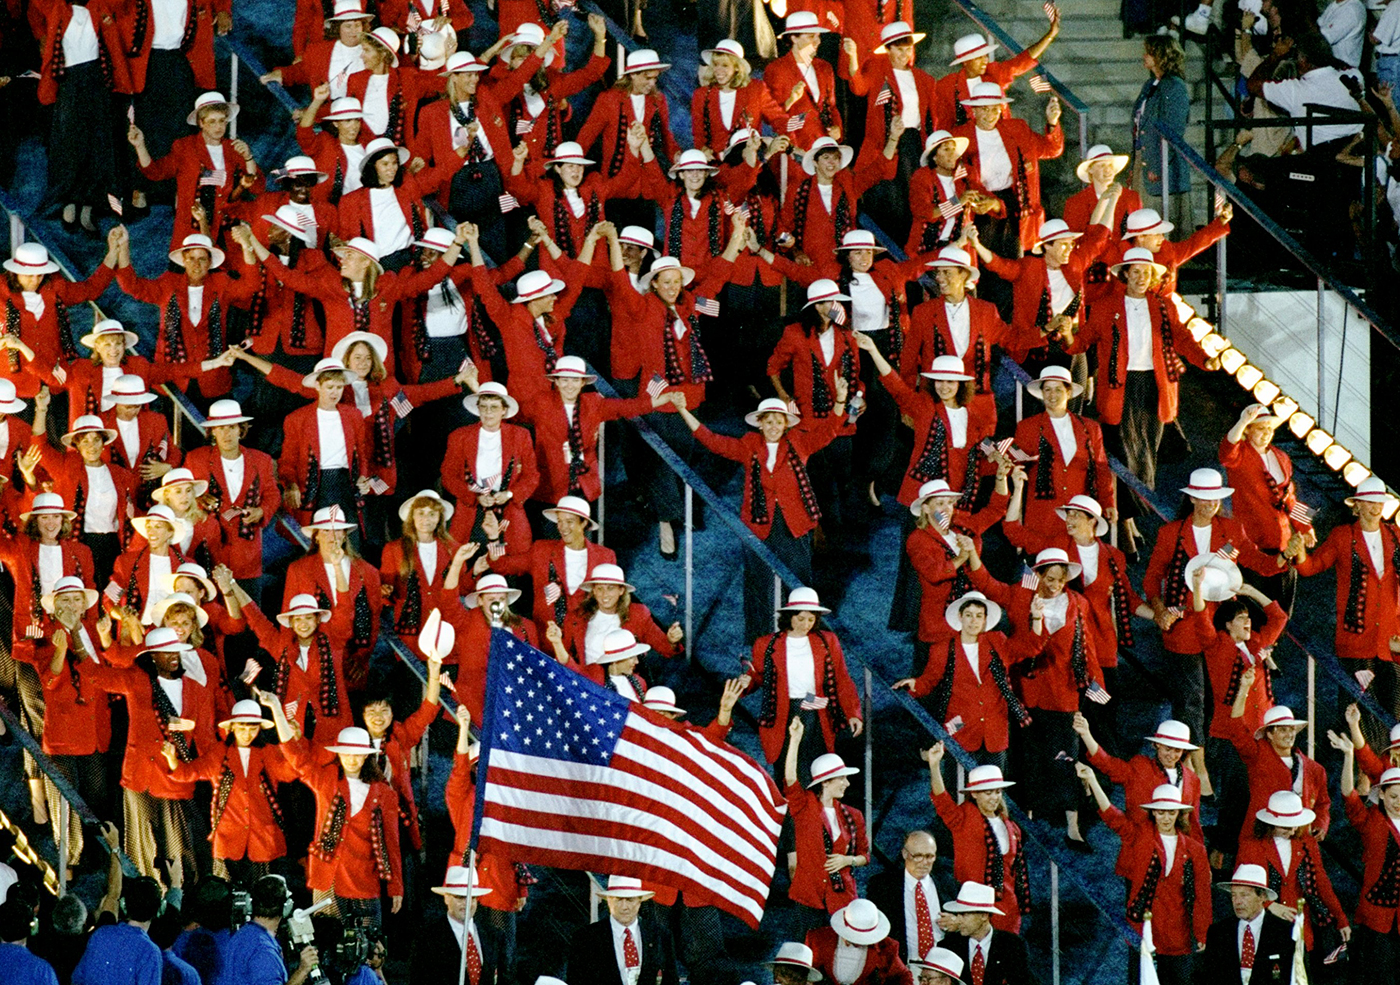 19 Jul 1996: The team from the USA enter the Olympic Stadium during the Opening Ceremony of the 1996 Olympic Games in Atlanta